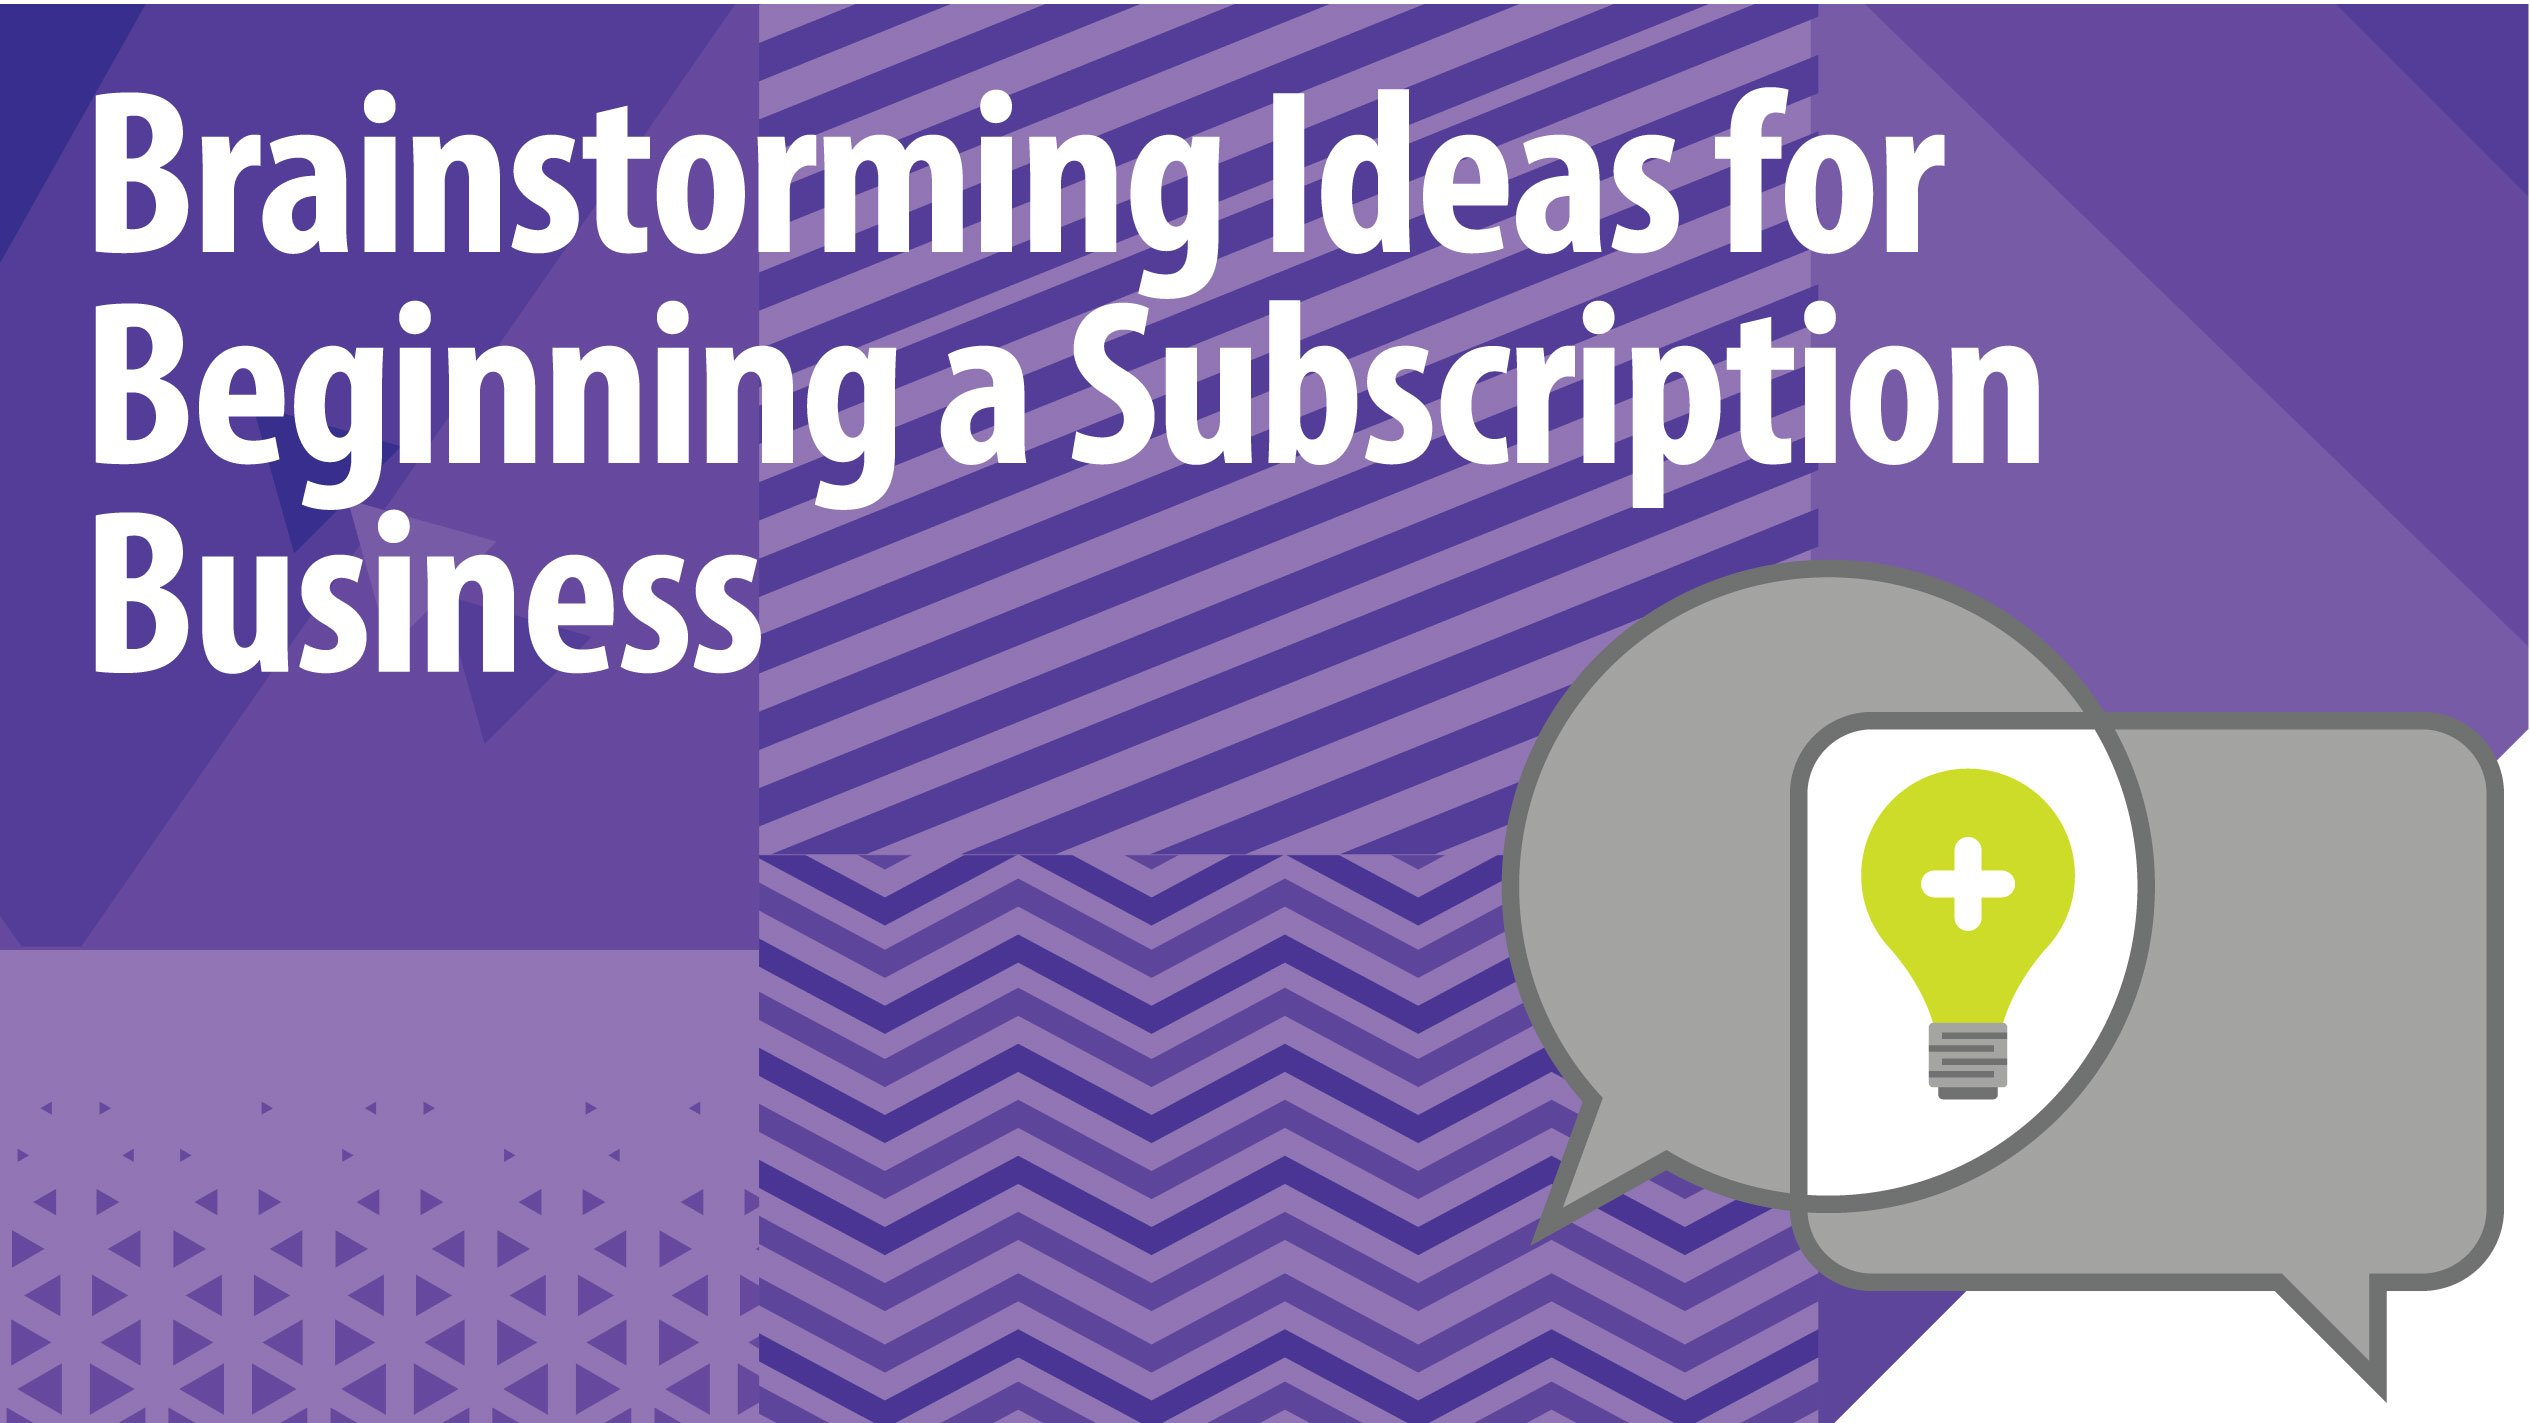 Brainstorming Ideas for Beginning a Subscription Business